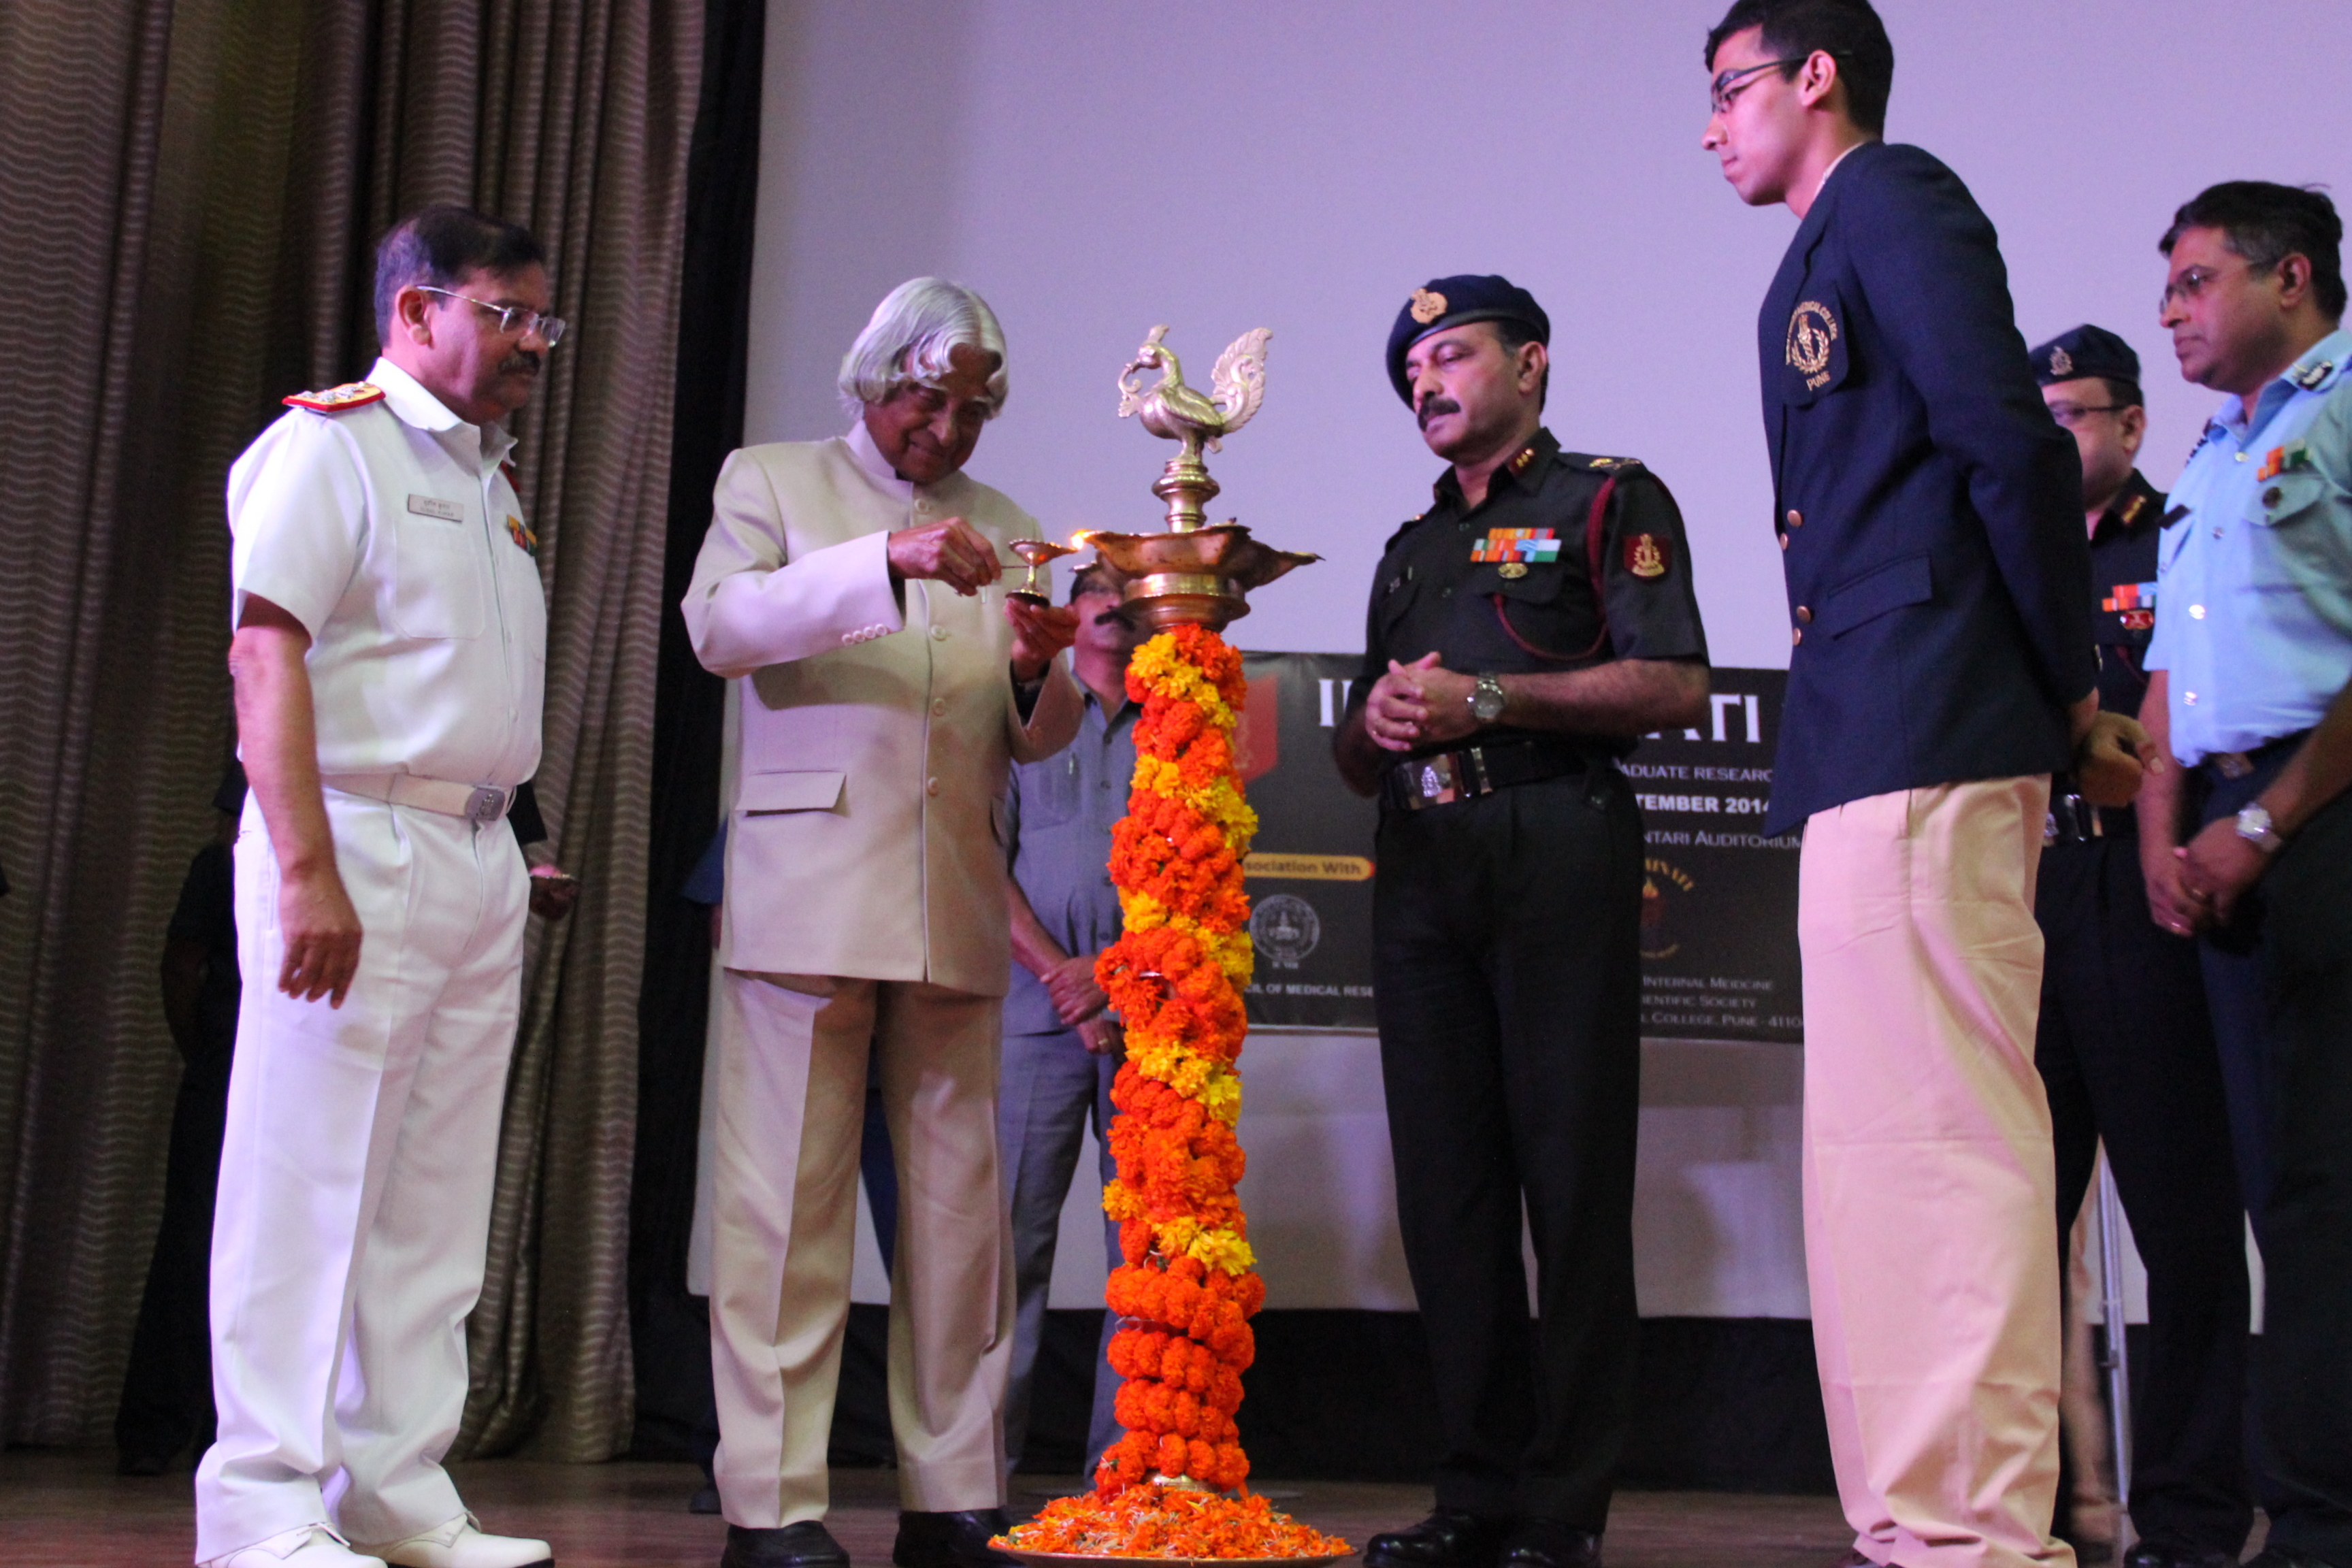 File:Dr. A.P.J. Abdul Kalam, Former President Of India Lighting The Lamp At